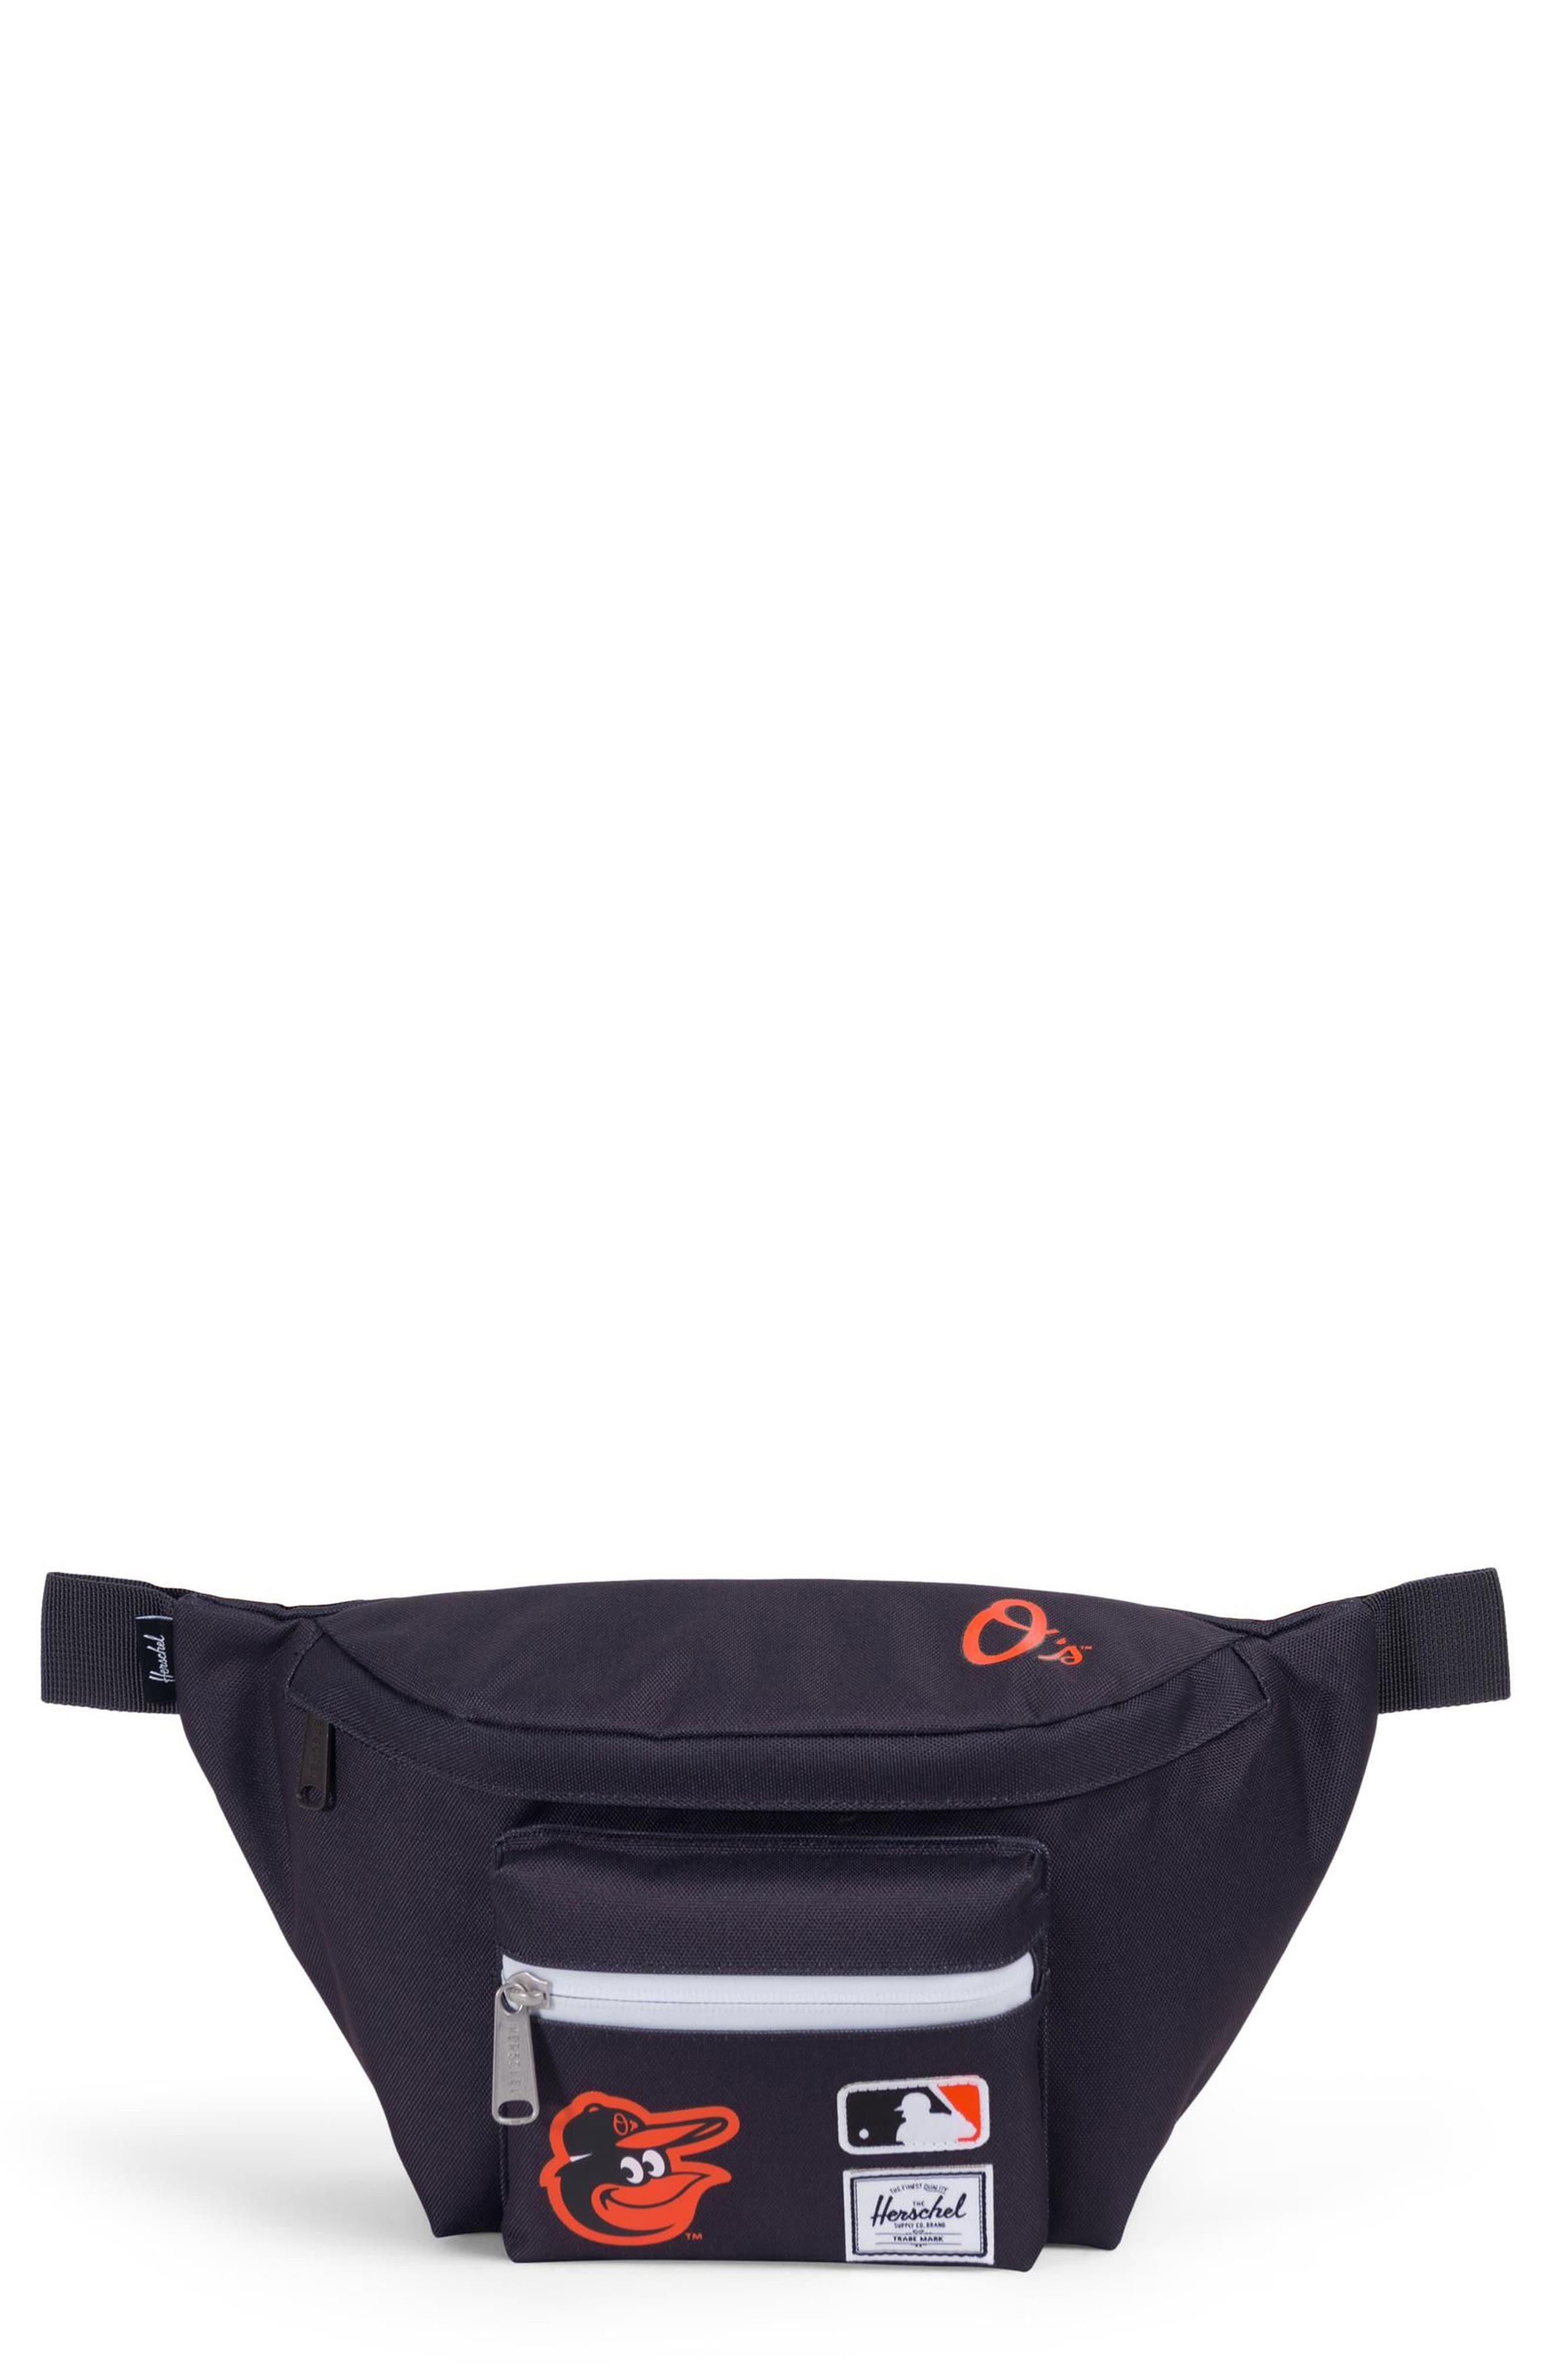 HERSCHEL SUPPLY CO. MLB American League Hip Pack, Main, color, 001